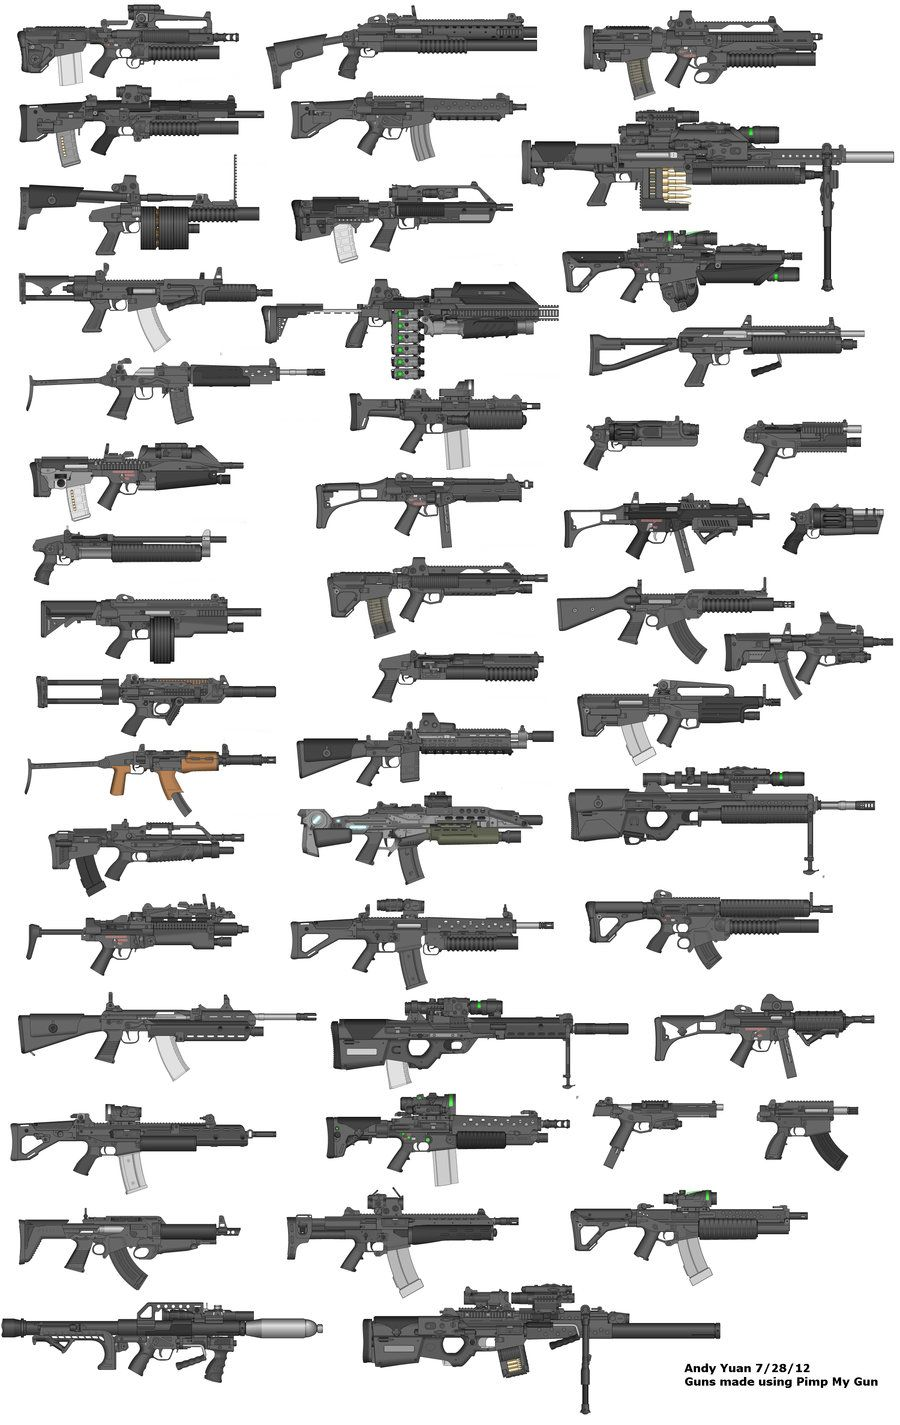 Rifles by Pimp My Gun 15 by c-force.deviantart.com on